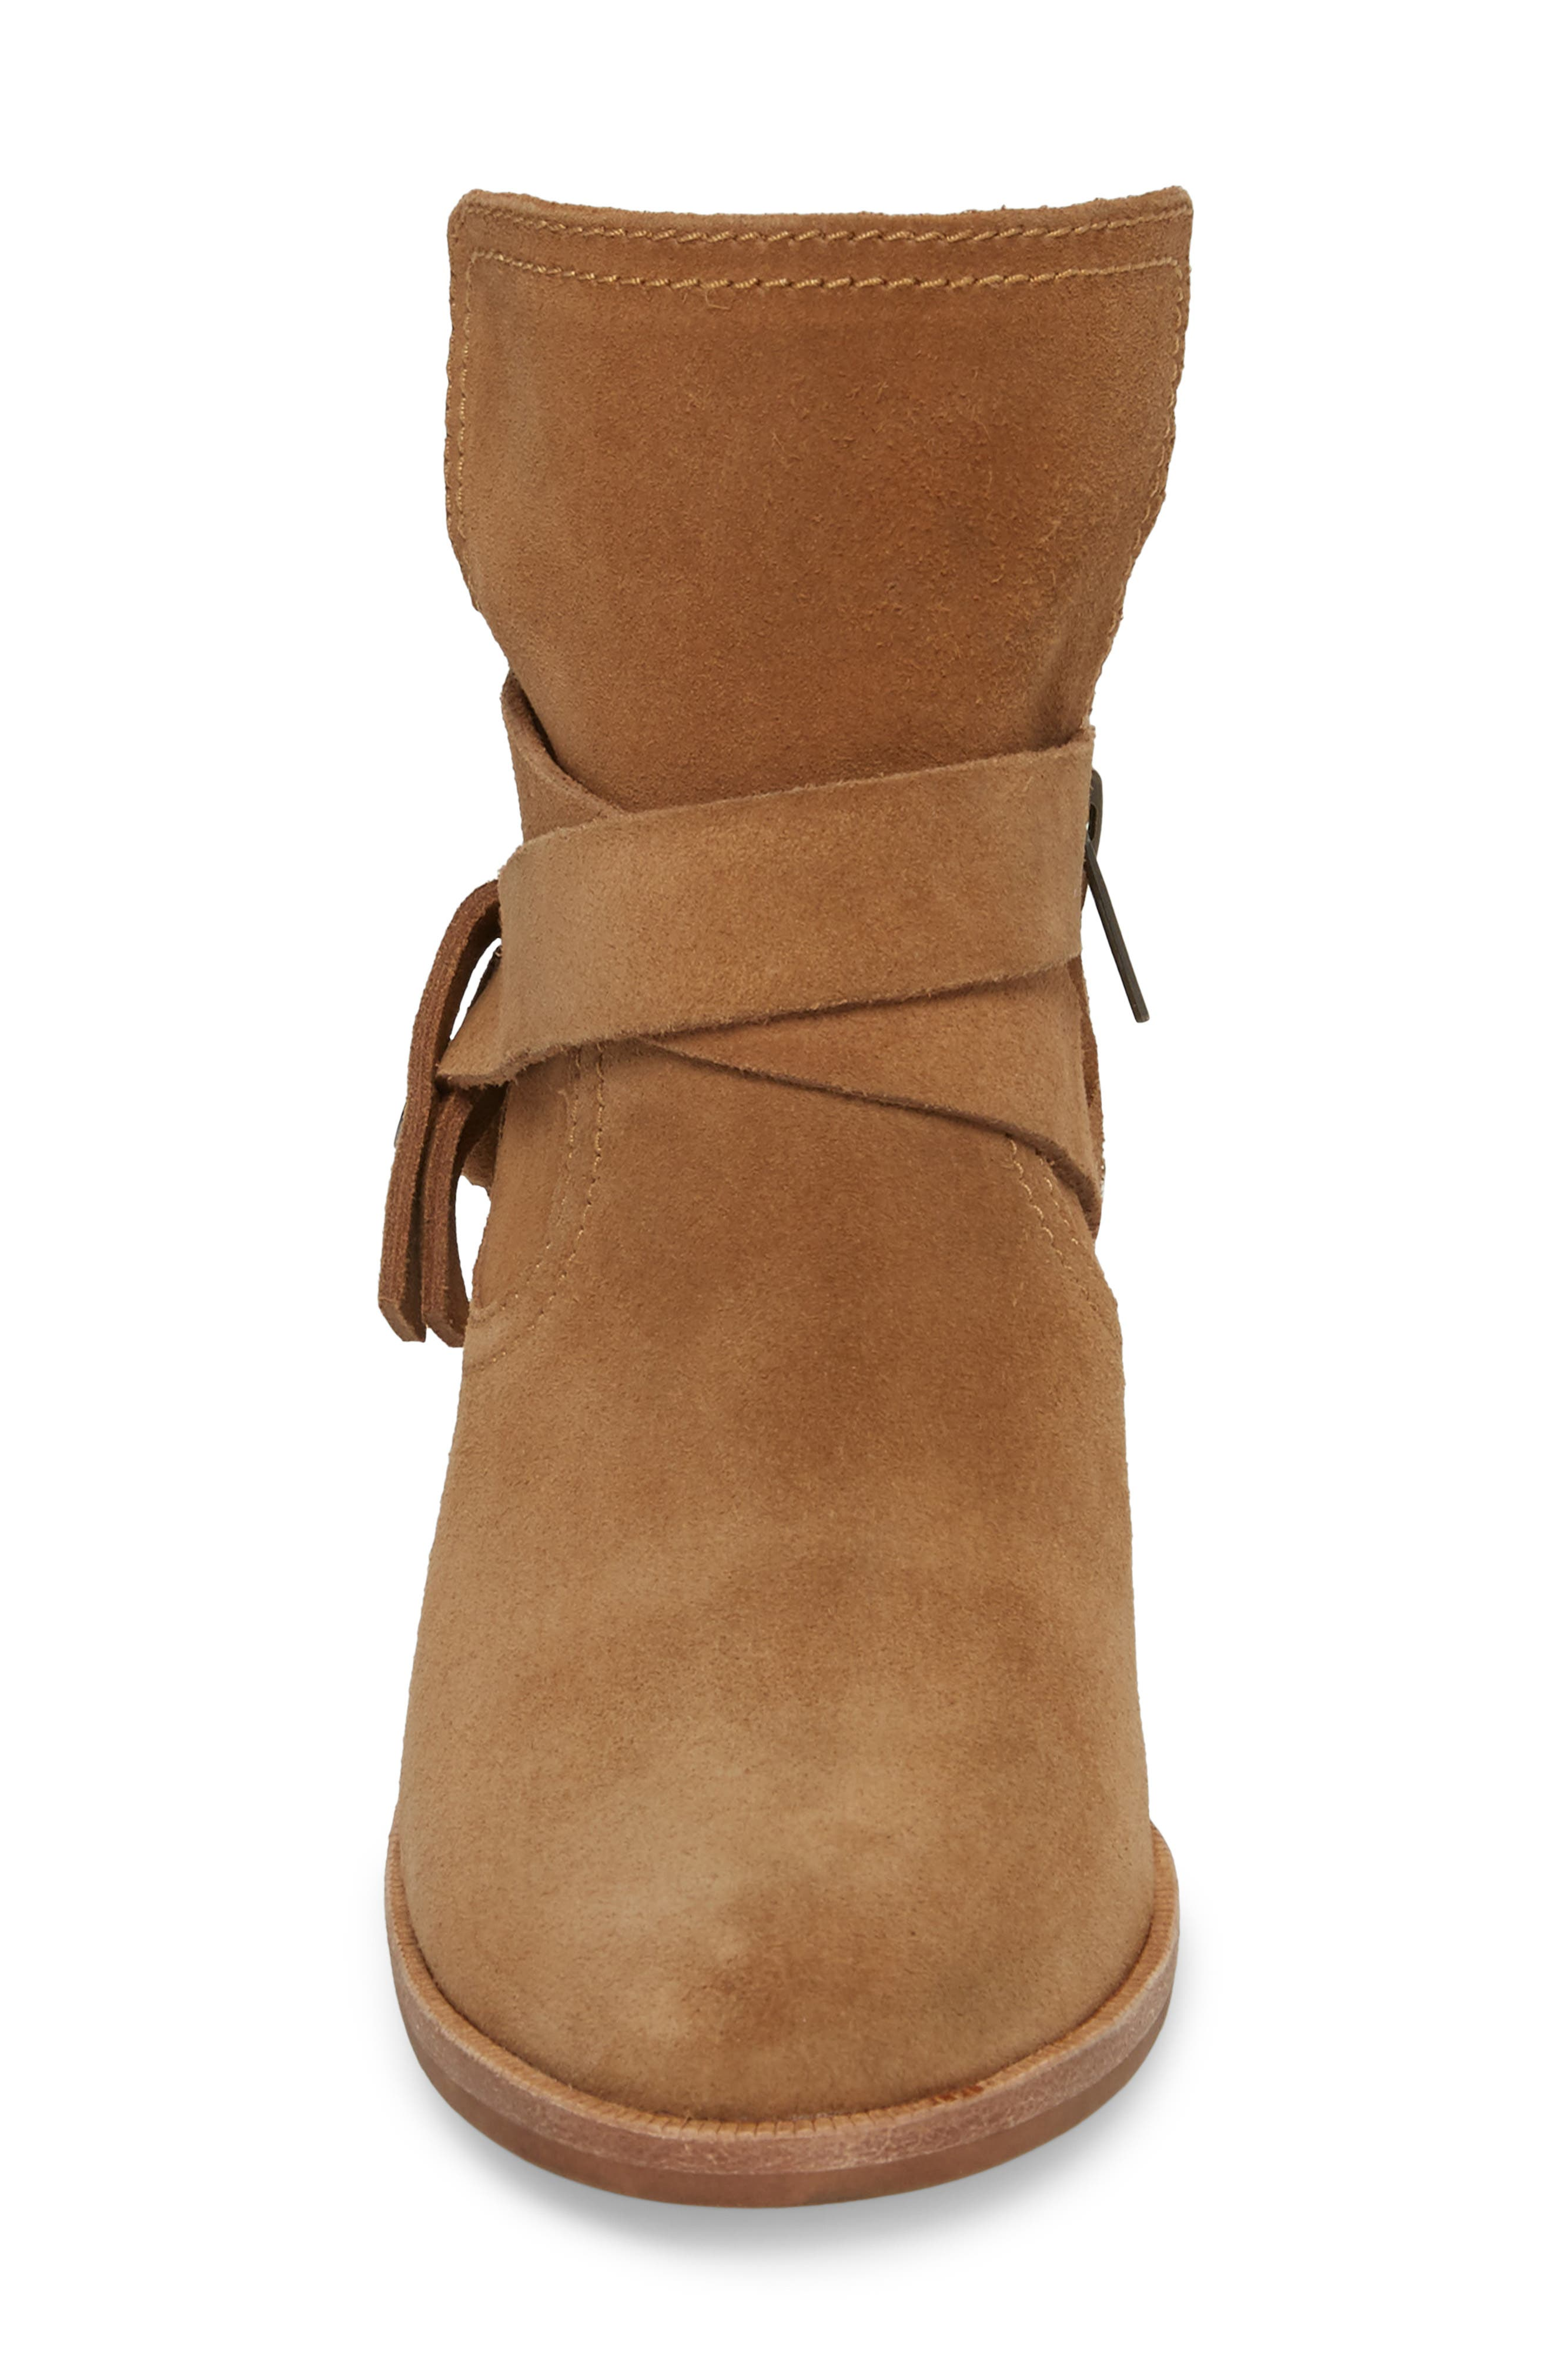 Elora Bootie,                             Alternate thumbnail 4, color,                             Chestnut Suede